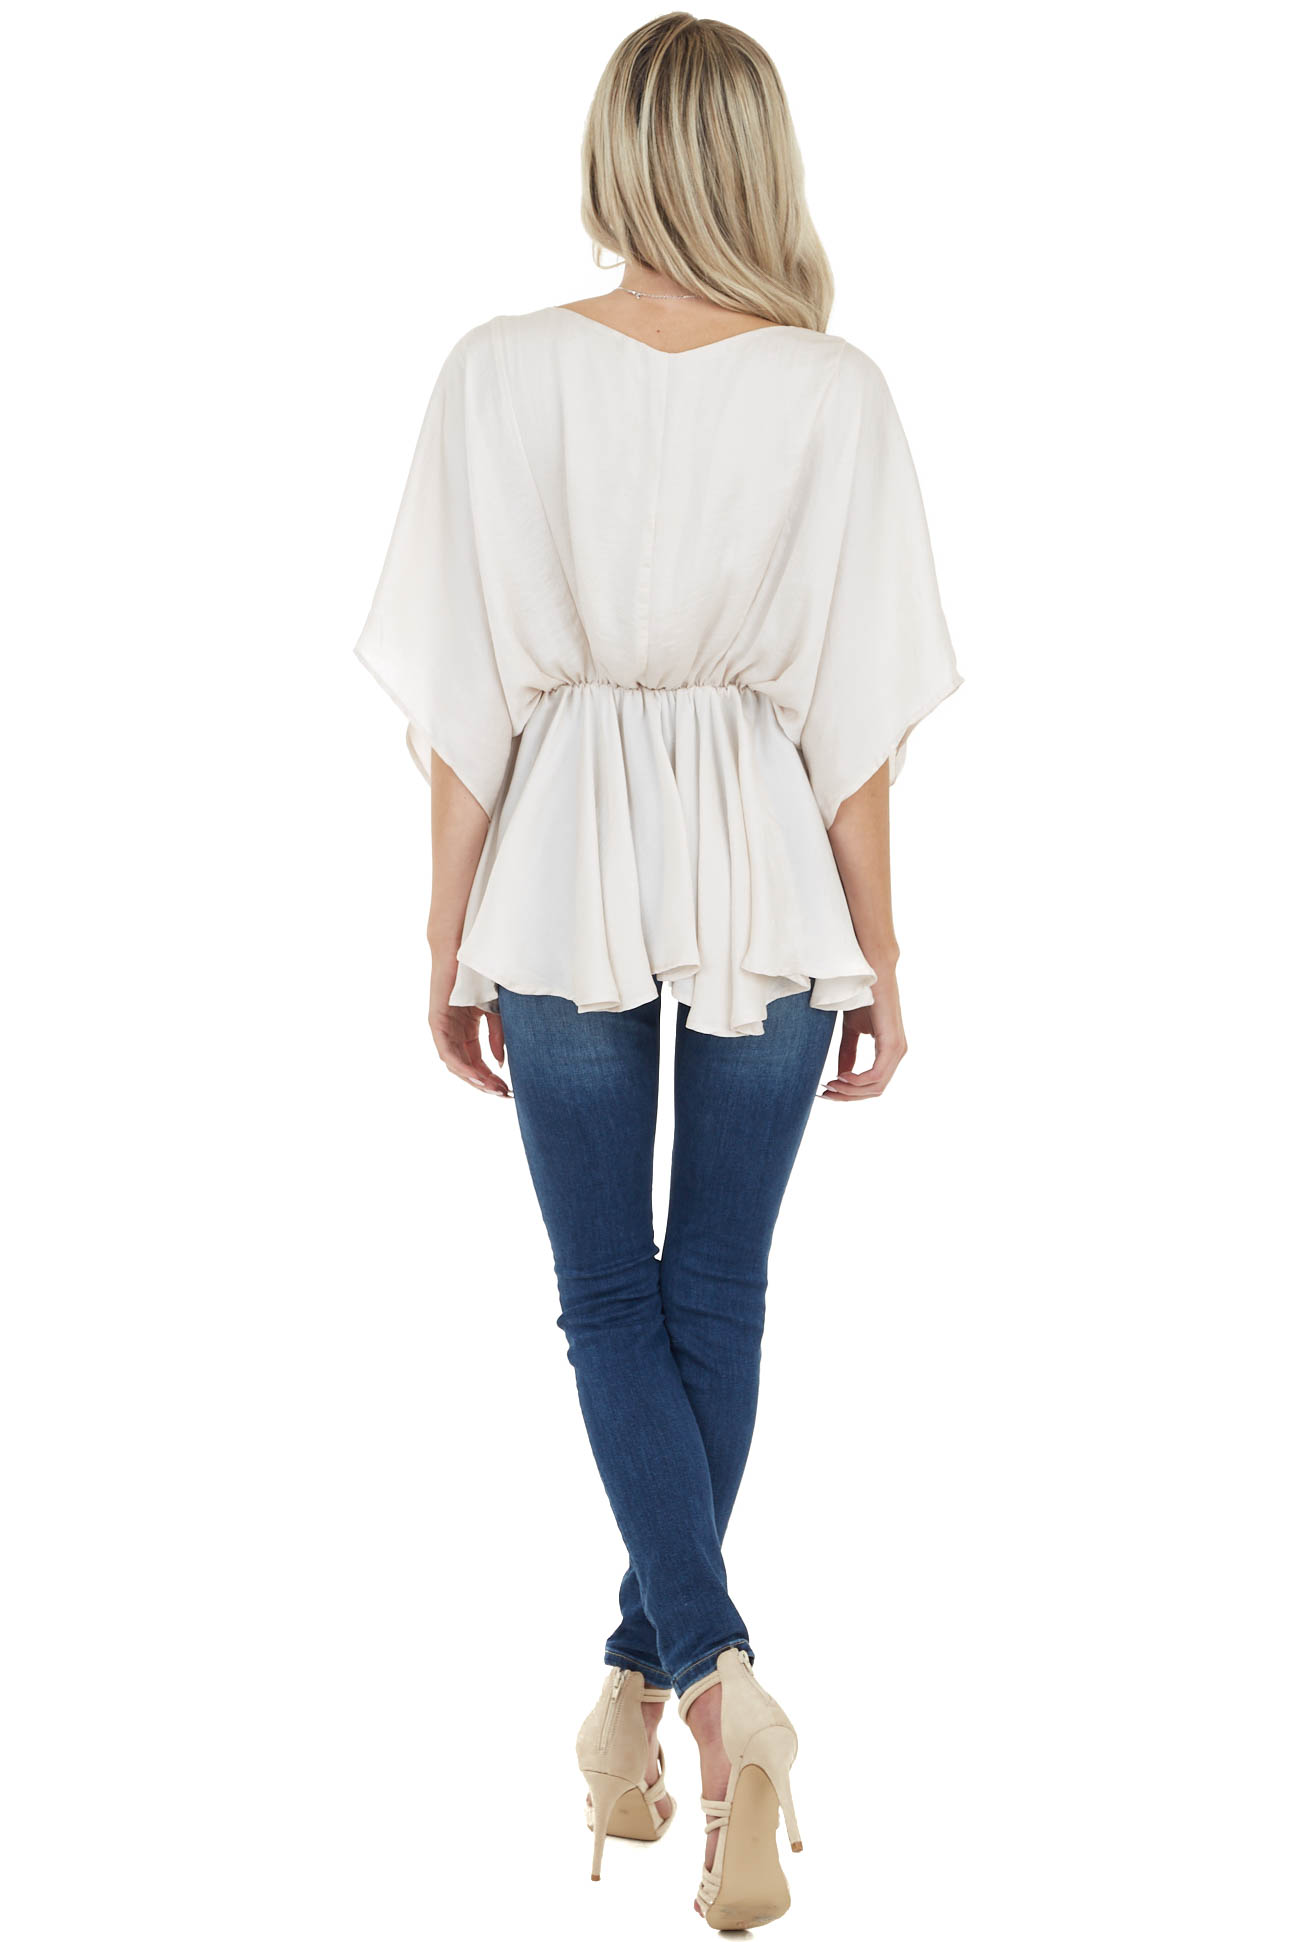 Oatmeal Flowy Drop Waist Blouse with Short Loose Sleeves